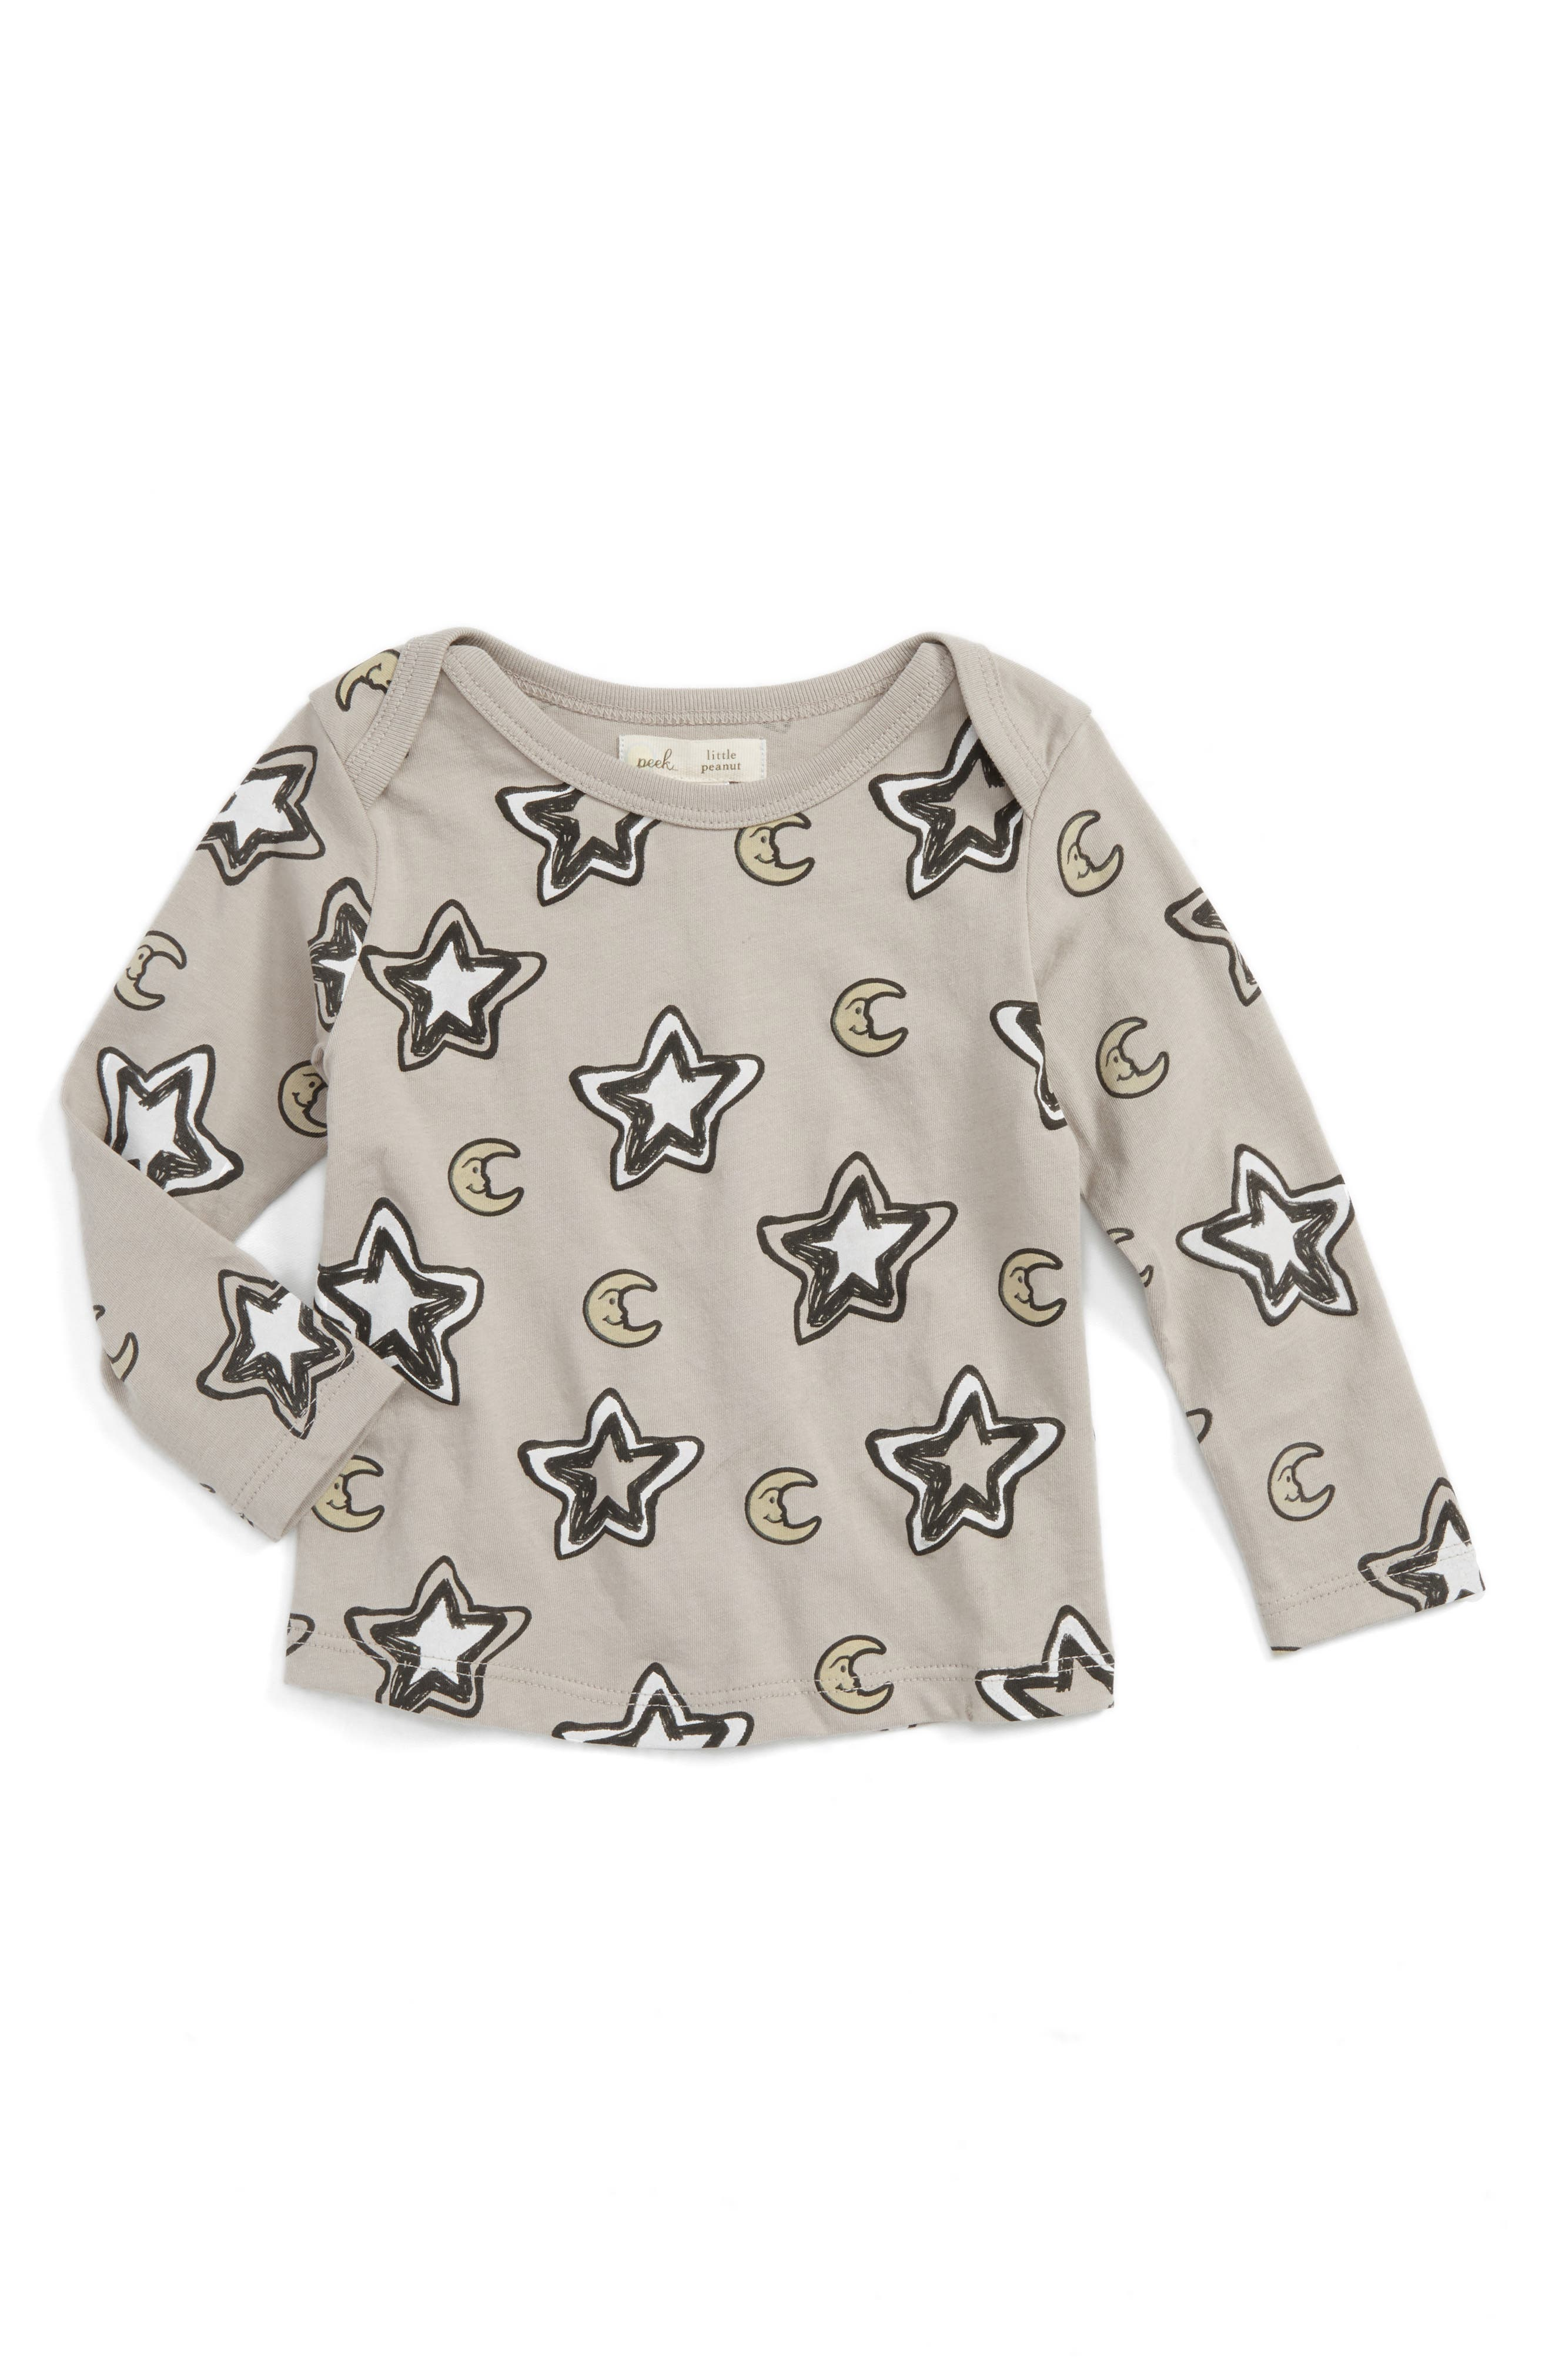 Main Image - Peek Star & Moon Print T-Shirt (Baby Boys)